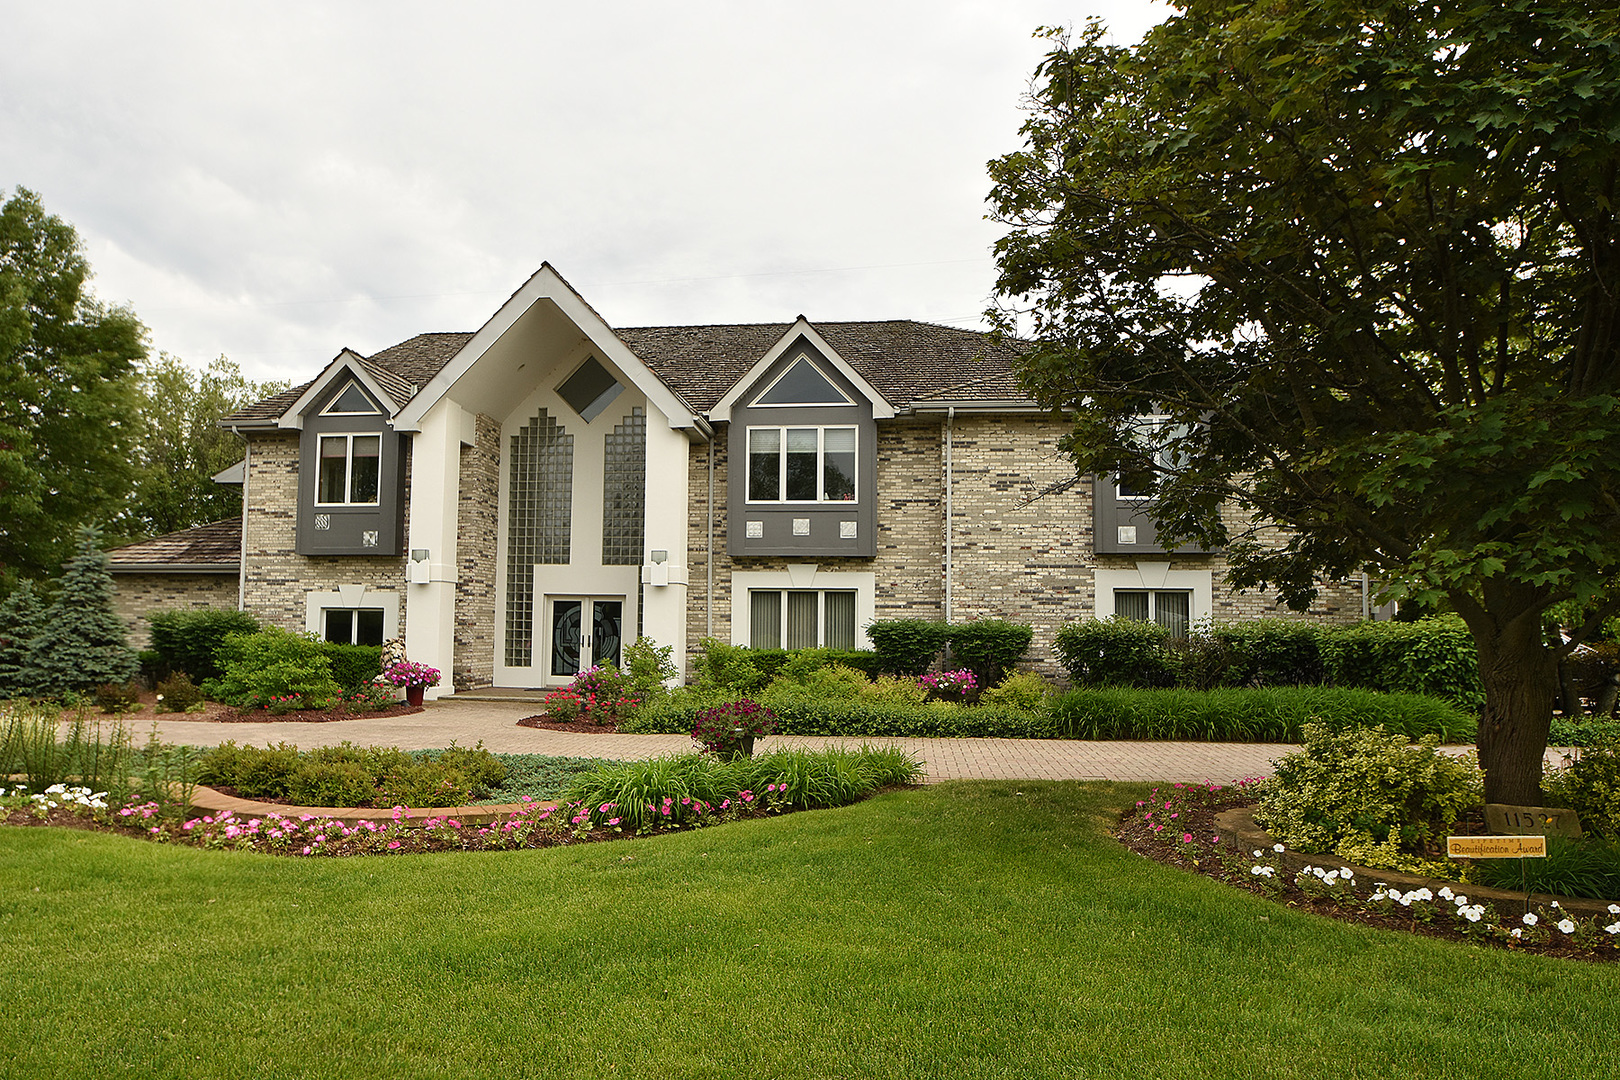 11527 Bryn Mawr Way, Mokena, Illinois